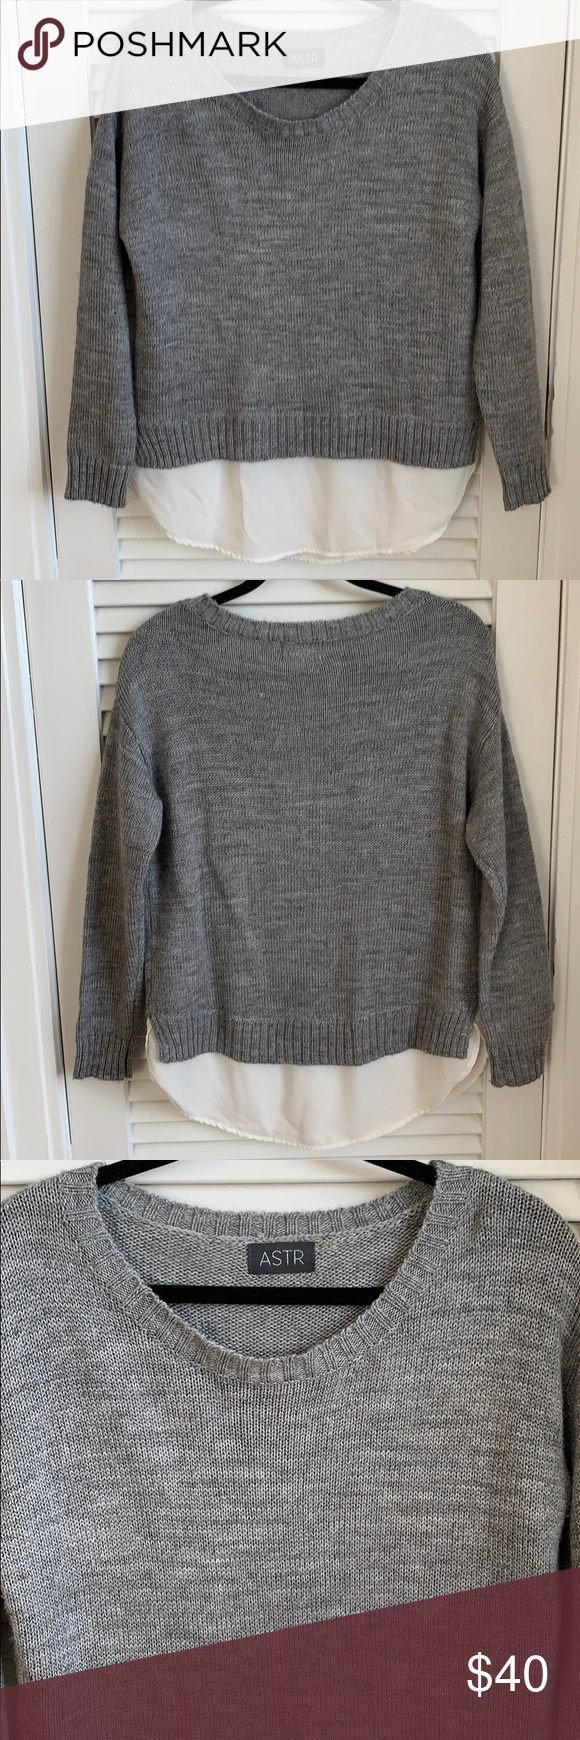 """f2c6eeebdde05 Nordstrom ASTR Sweater ASTR Sweater in size S. Great condition. Approximate  measurements Armpit to armpit 22"""" Length 29"""" 70% acrylic 30% wool Astr  Sweaters"""